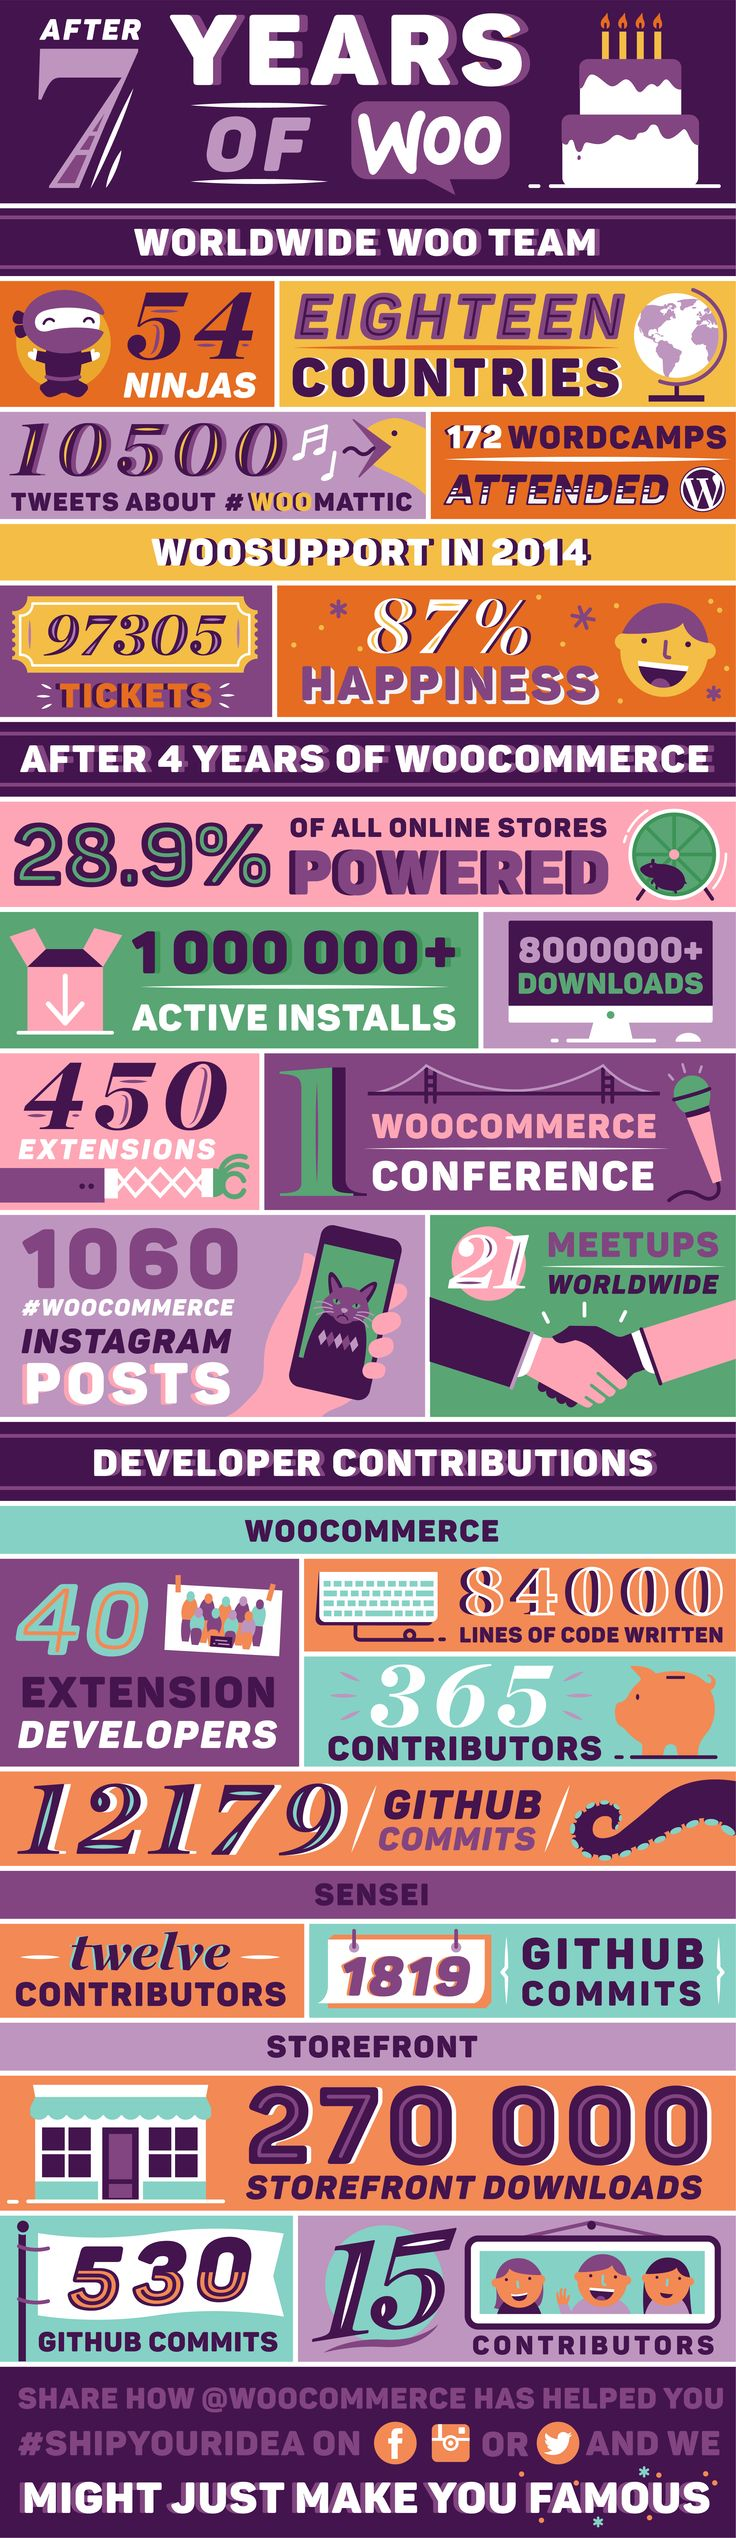 After 7 years, a look at WooThemes and #WooCommerce infographically speaking.